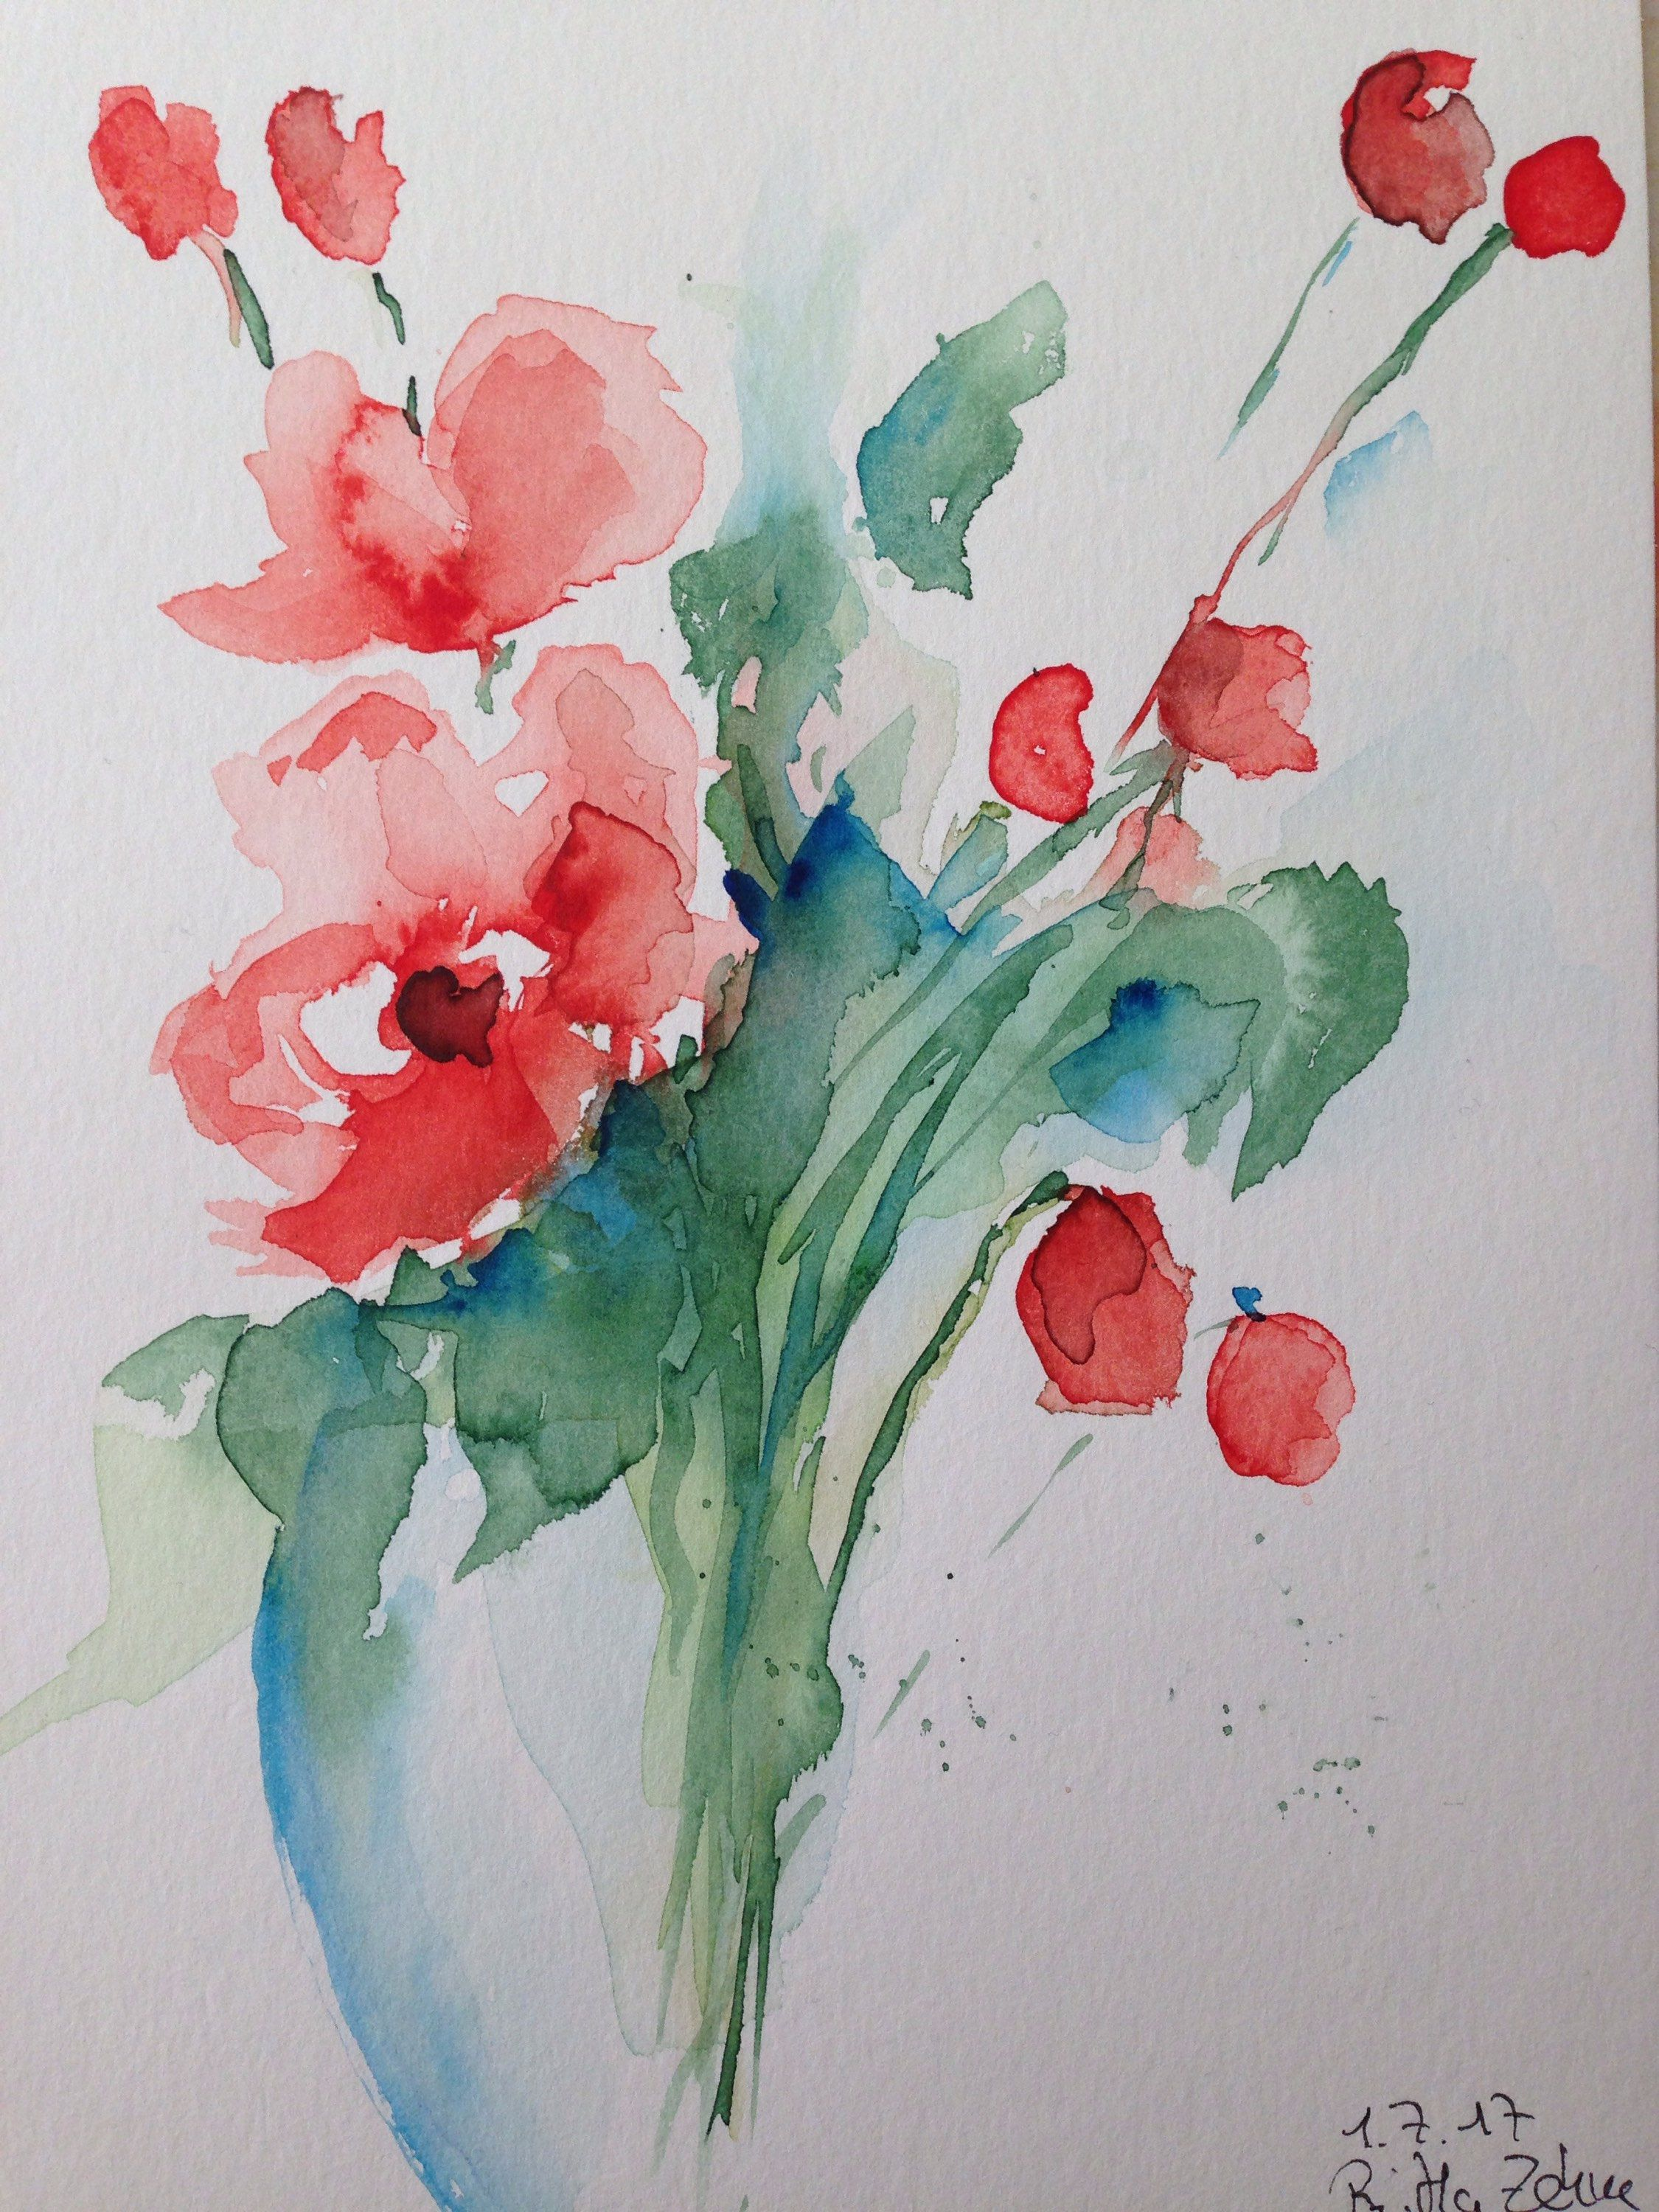 Original Watercolor Flower Bouquet Floral Picture Watercolor Painting Flowers Nature Abstract Painting Aquarellmalerei Aquarell Blumen Aquarell